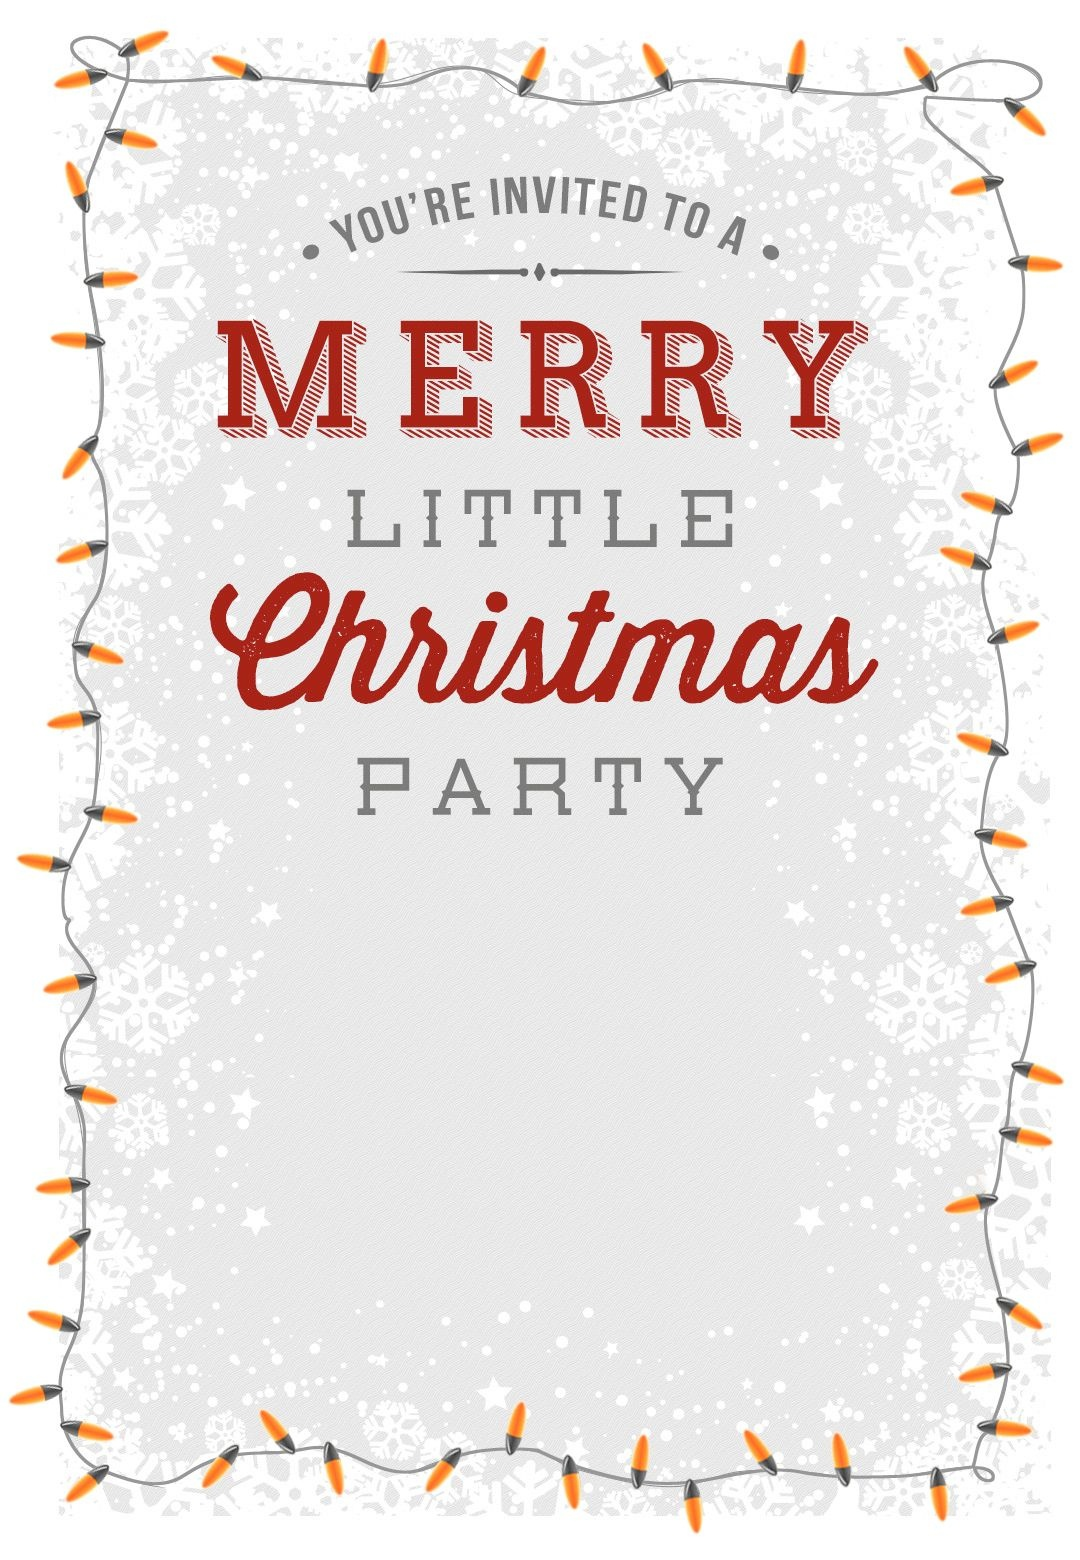 A Merry Little Party - Free Printable Christmas Invitation Template - Free Online Printable Christmas Party Invitations